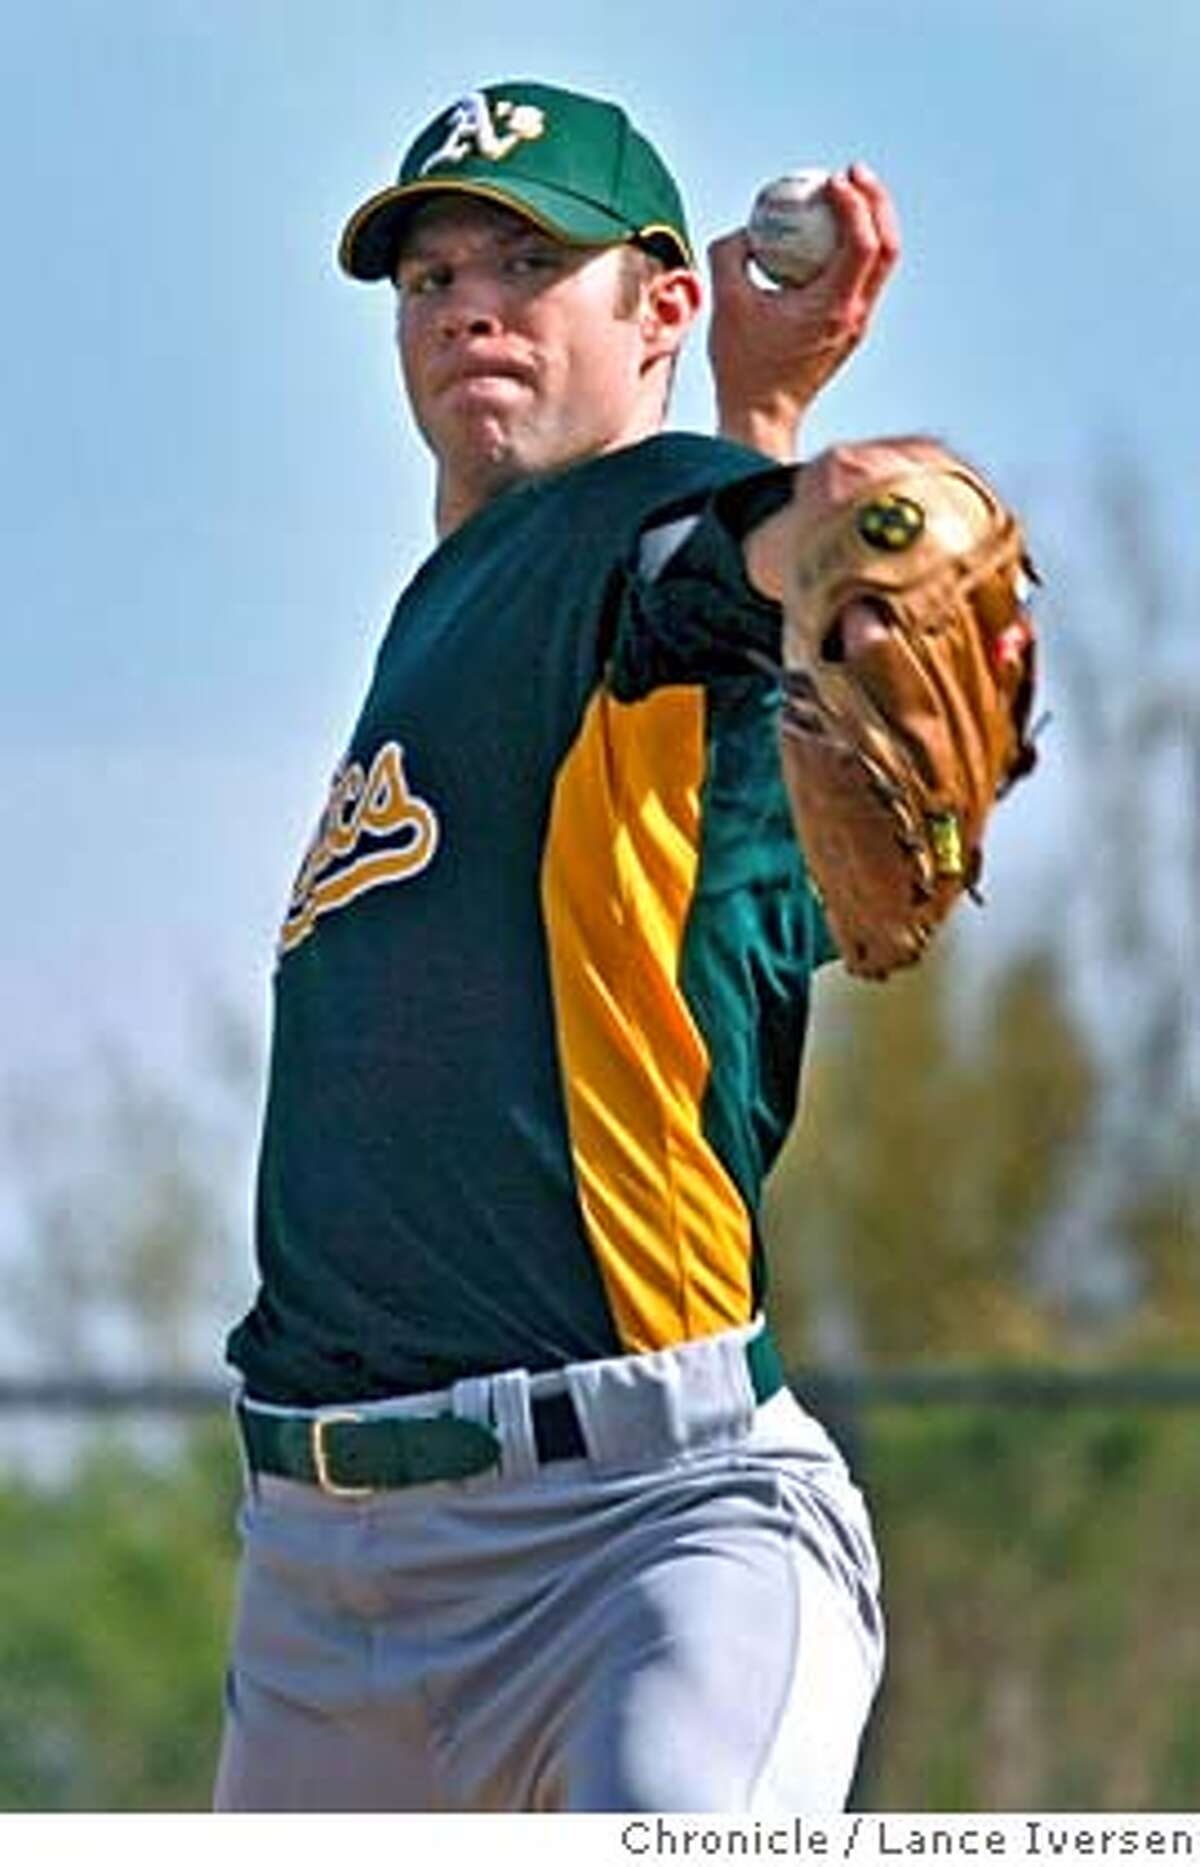 Oakland Athletics pitcher Rich Harden took to the mound at Papago Park, home of the Oakland Athletics for spring training in Phoenix. By Lance Iversen/The San Francisco Chronicle MANDATORY CREDIT PHOTOG AND SAN FRANCISCO CHRONICLE/NO SALES MAGS OUT